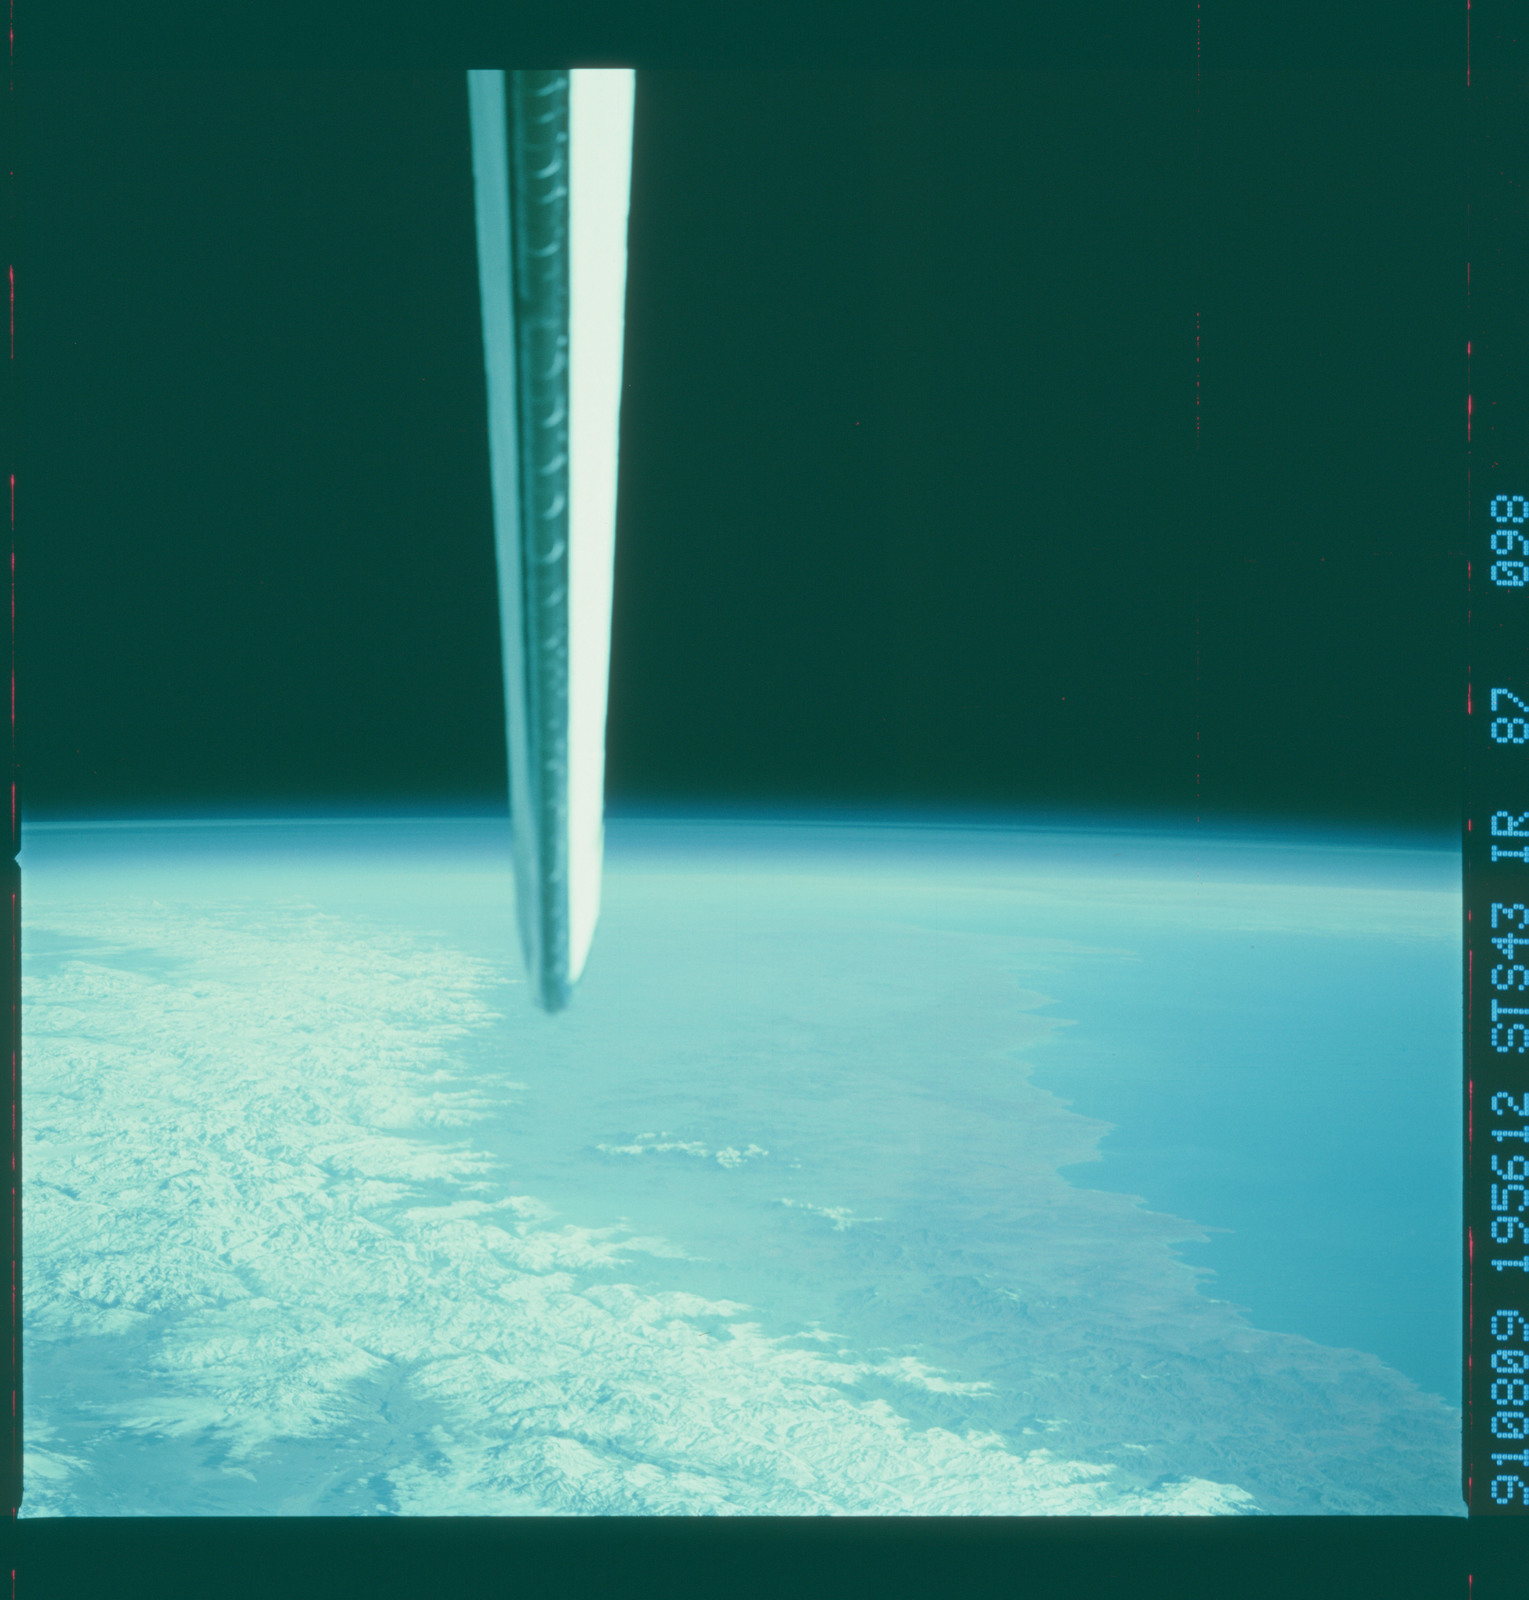 S43-87-098 - STS-043 - STS-43 earth observations